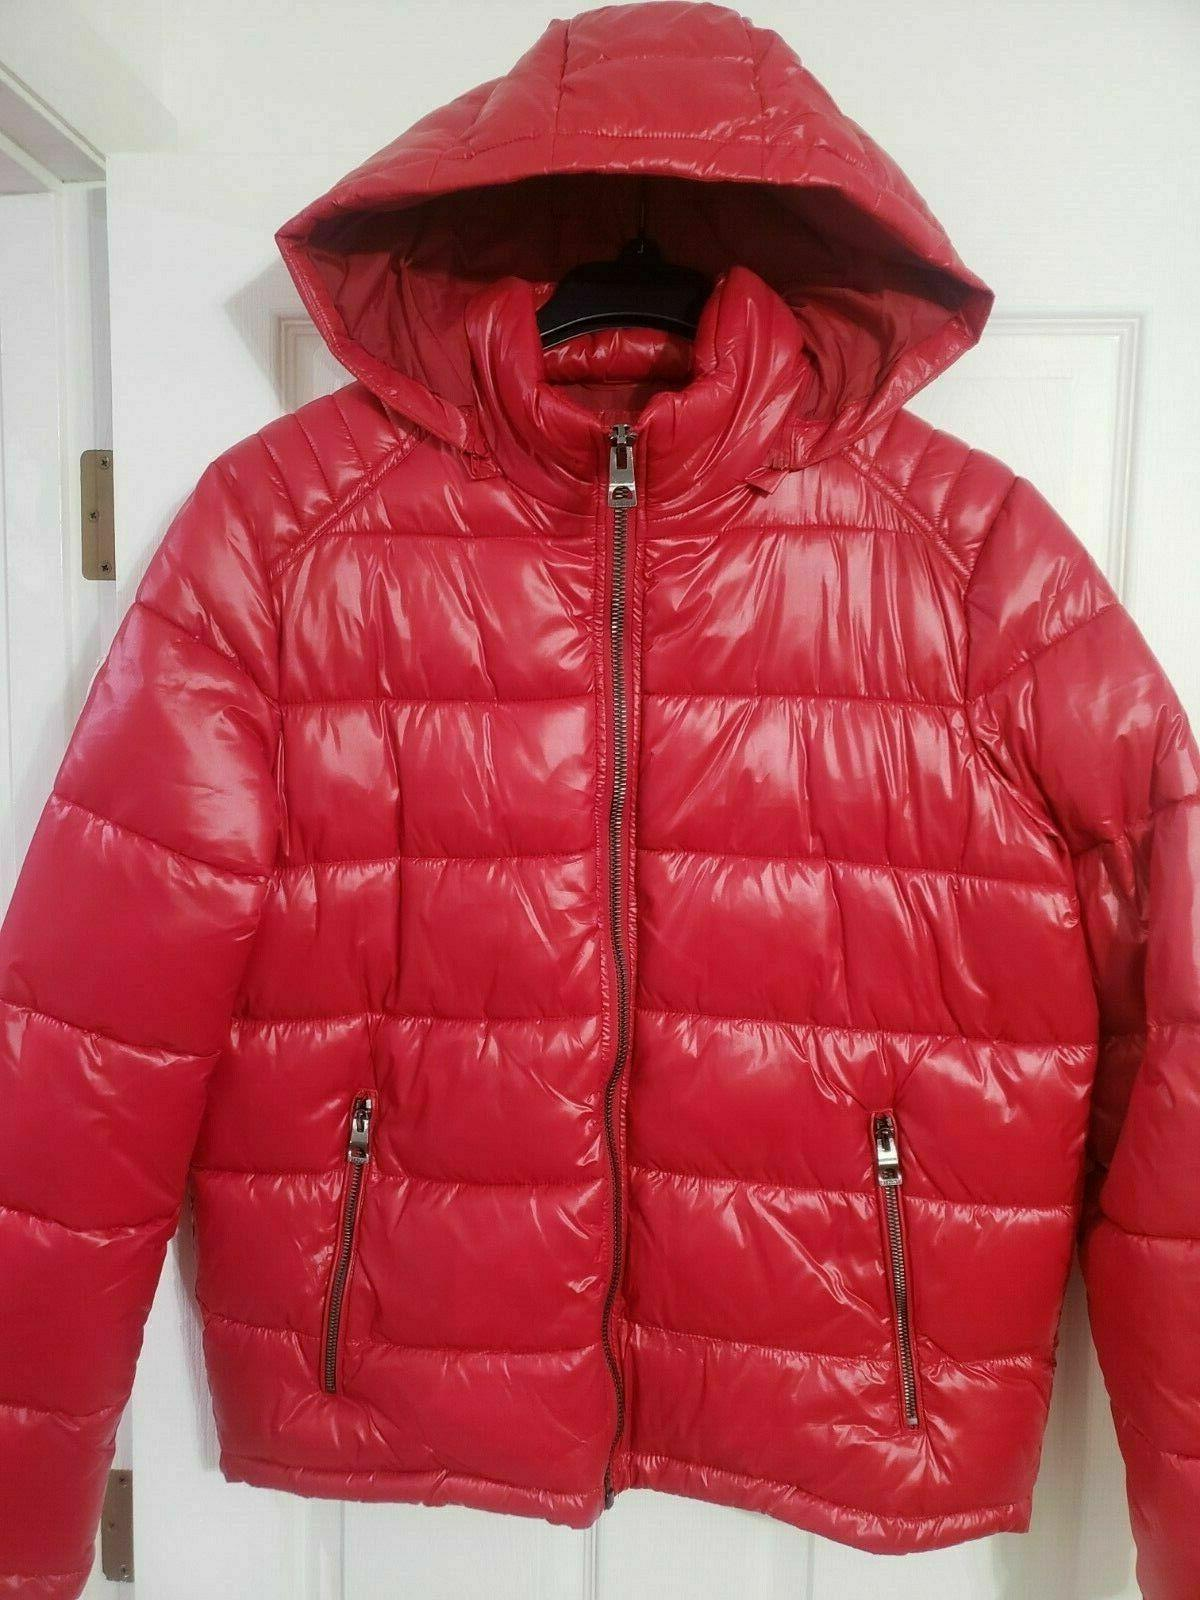 GUESS Removable Hood - - With Tags